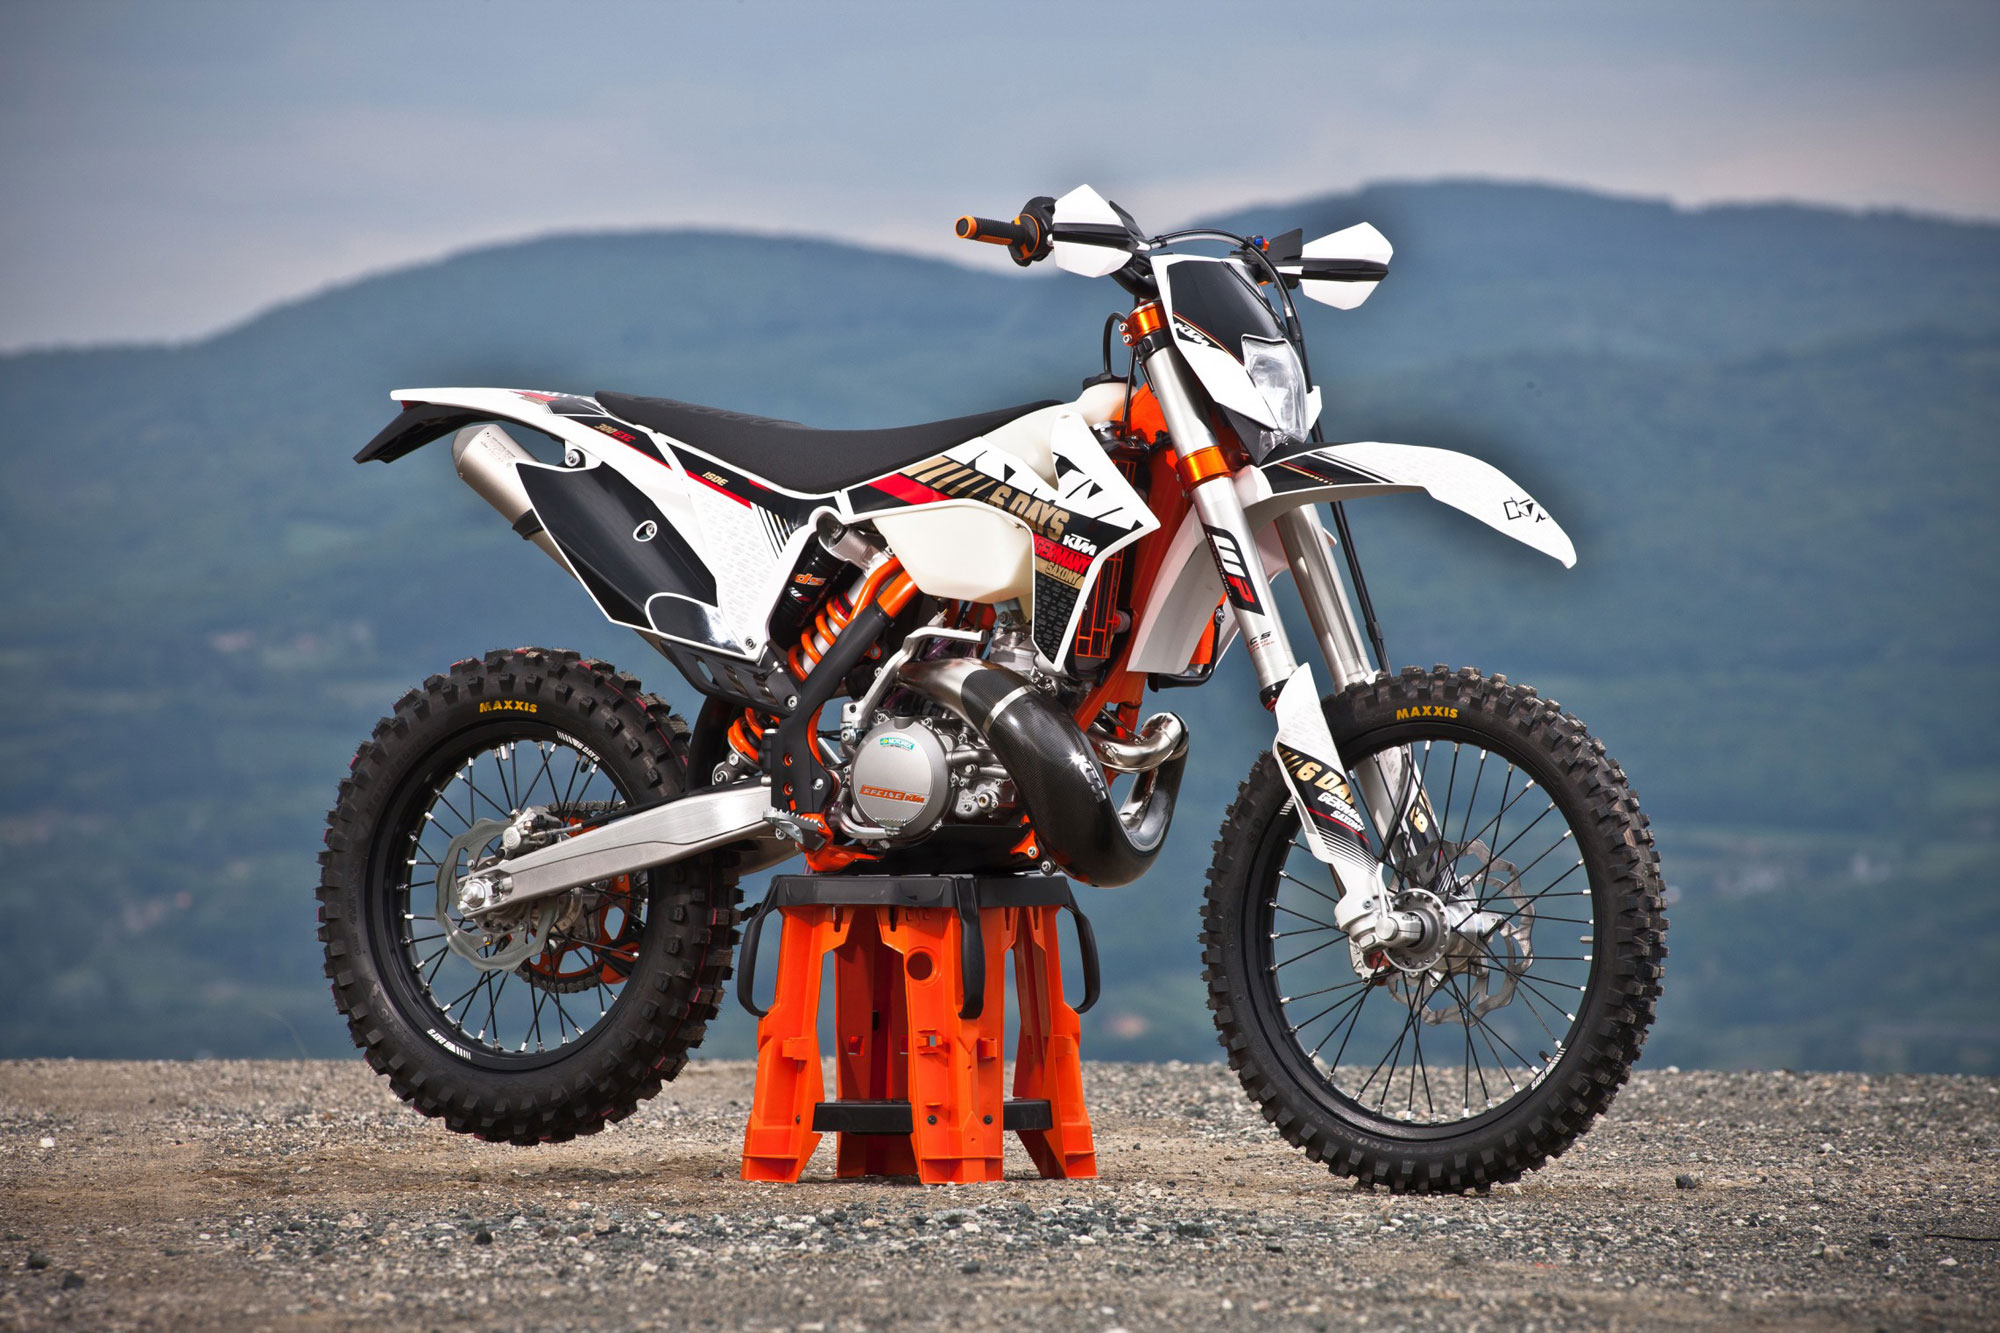 wallpaper.wiki-Motocross-Ktm-Photo-Download-Free-PIC-WPE007191